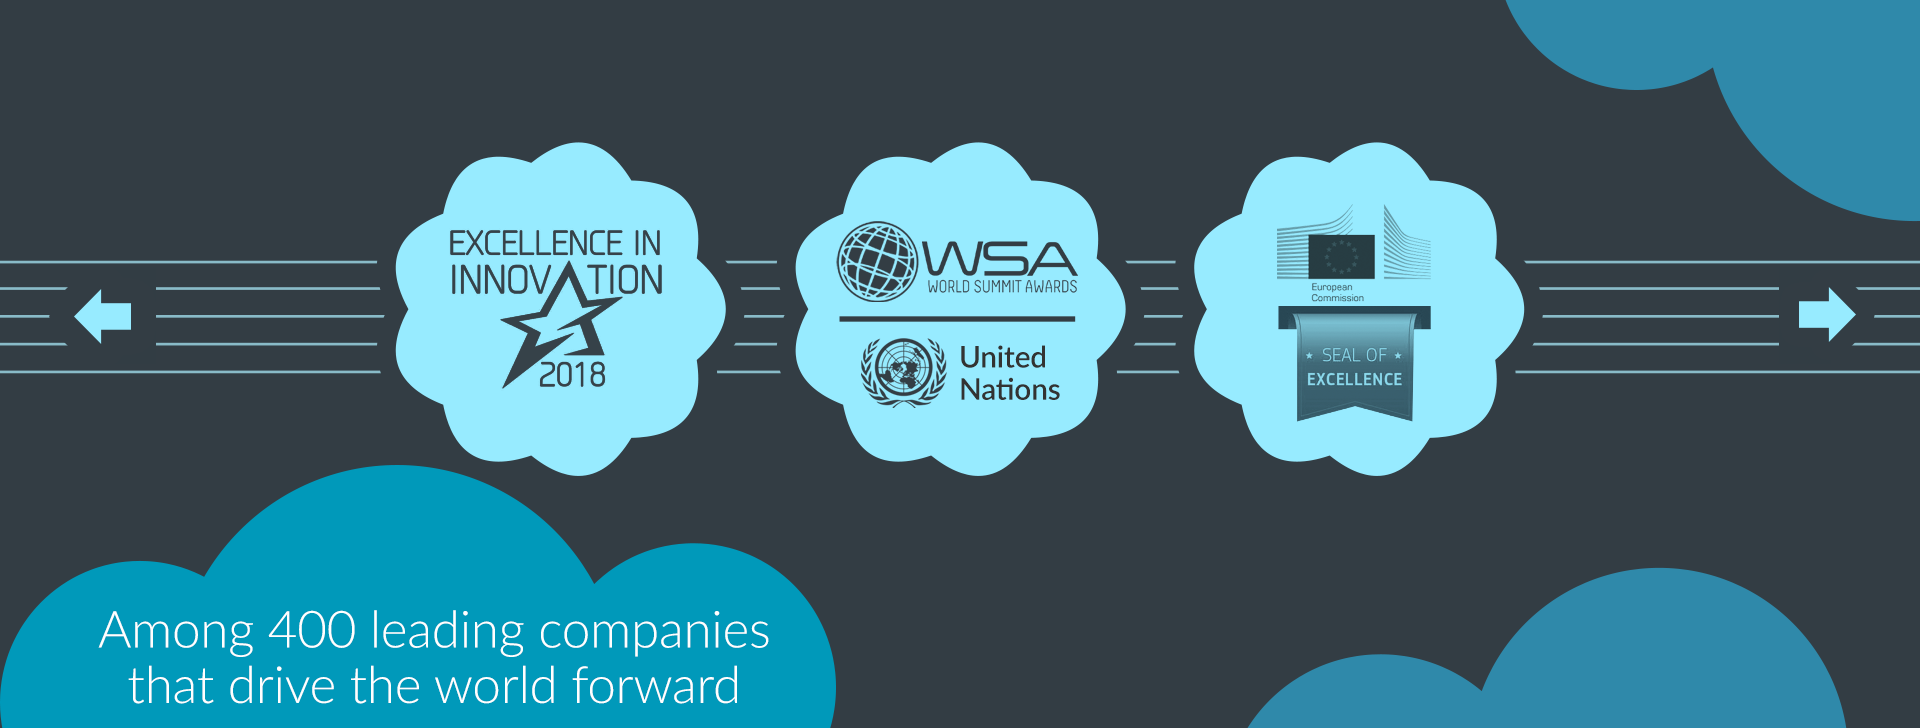 Among 400 leading companies that drive the world forward